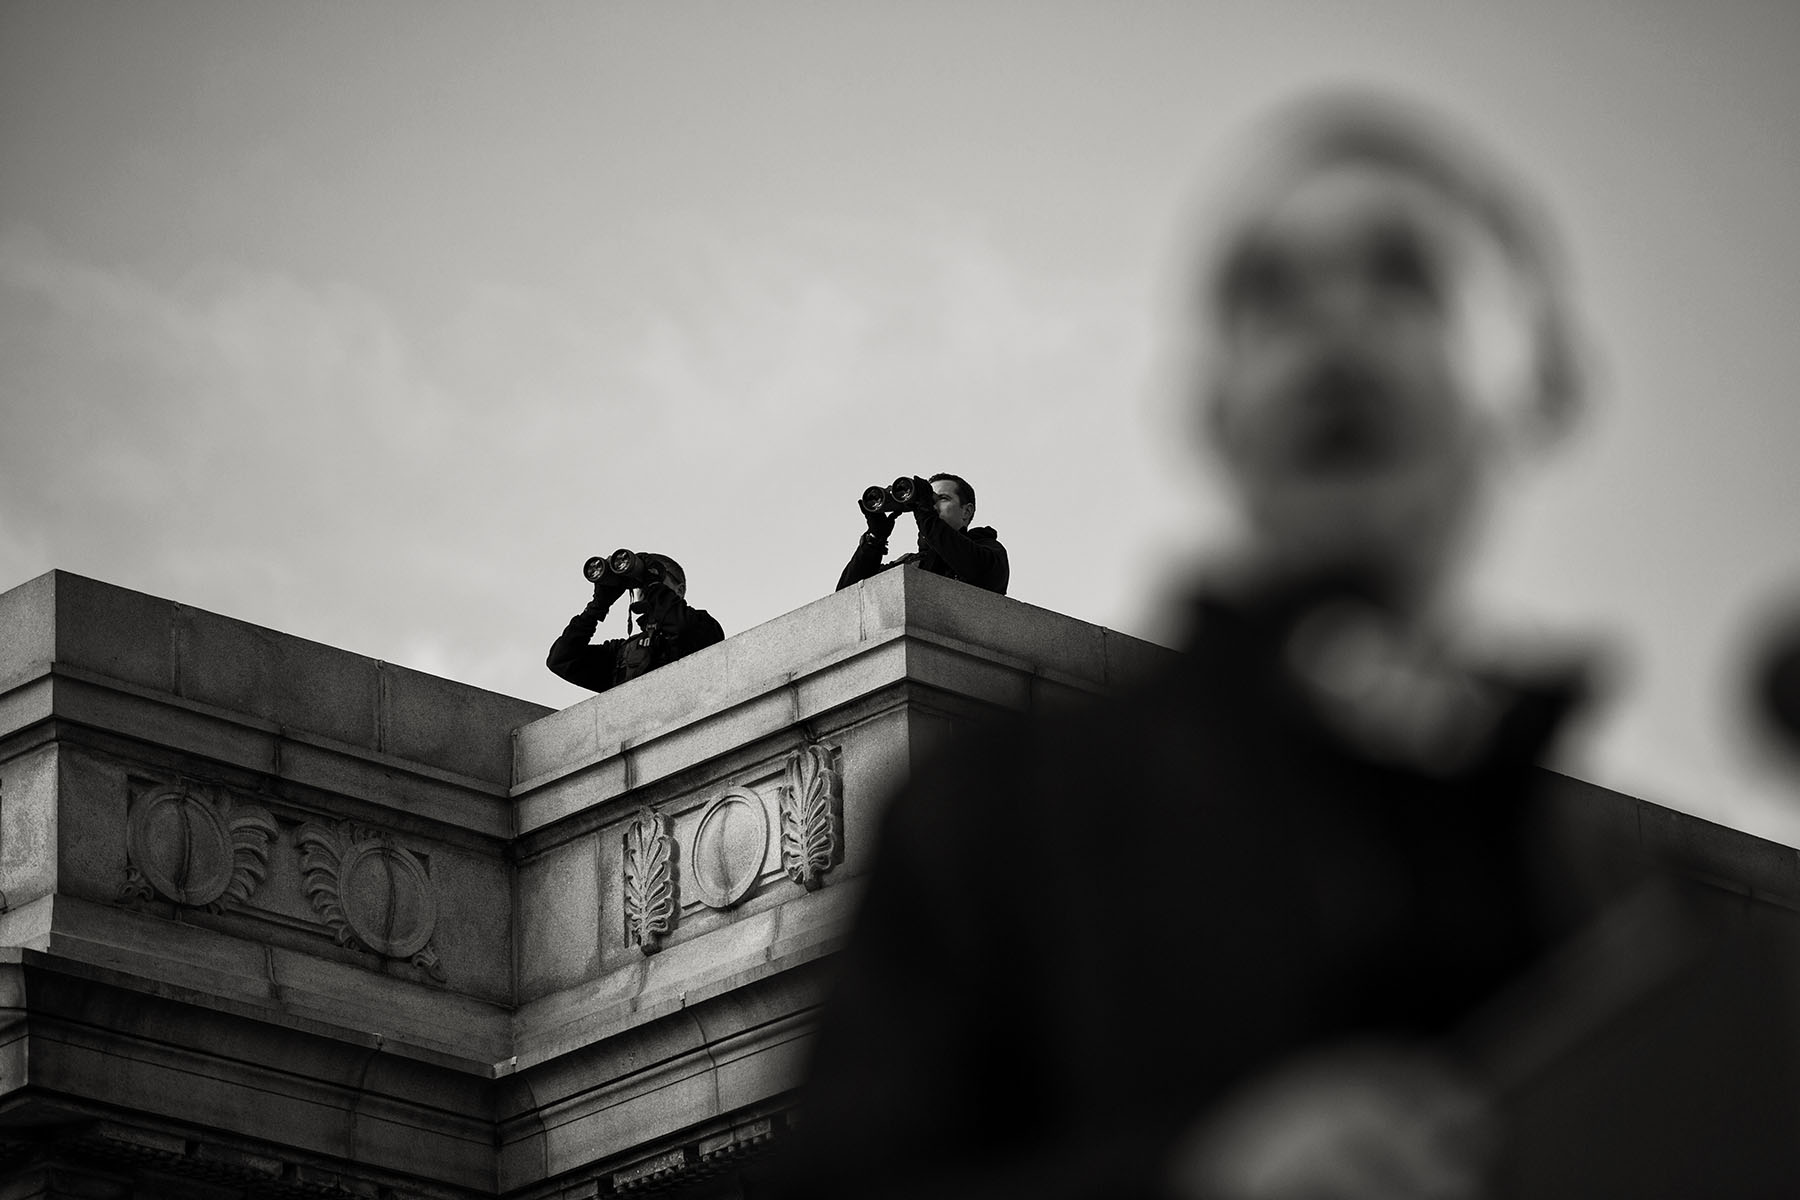 Secret Service snipers watch on a rooftop as President Barack Obama speaks at a campaign rally in Concord, NH.